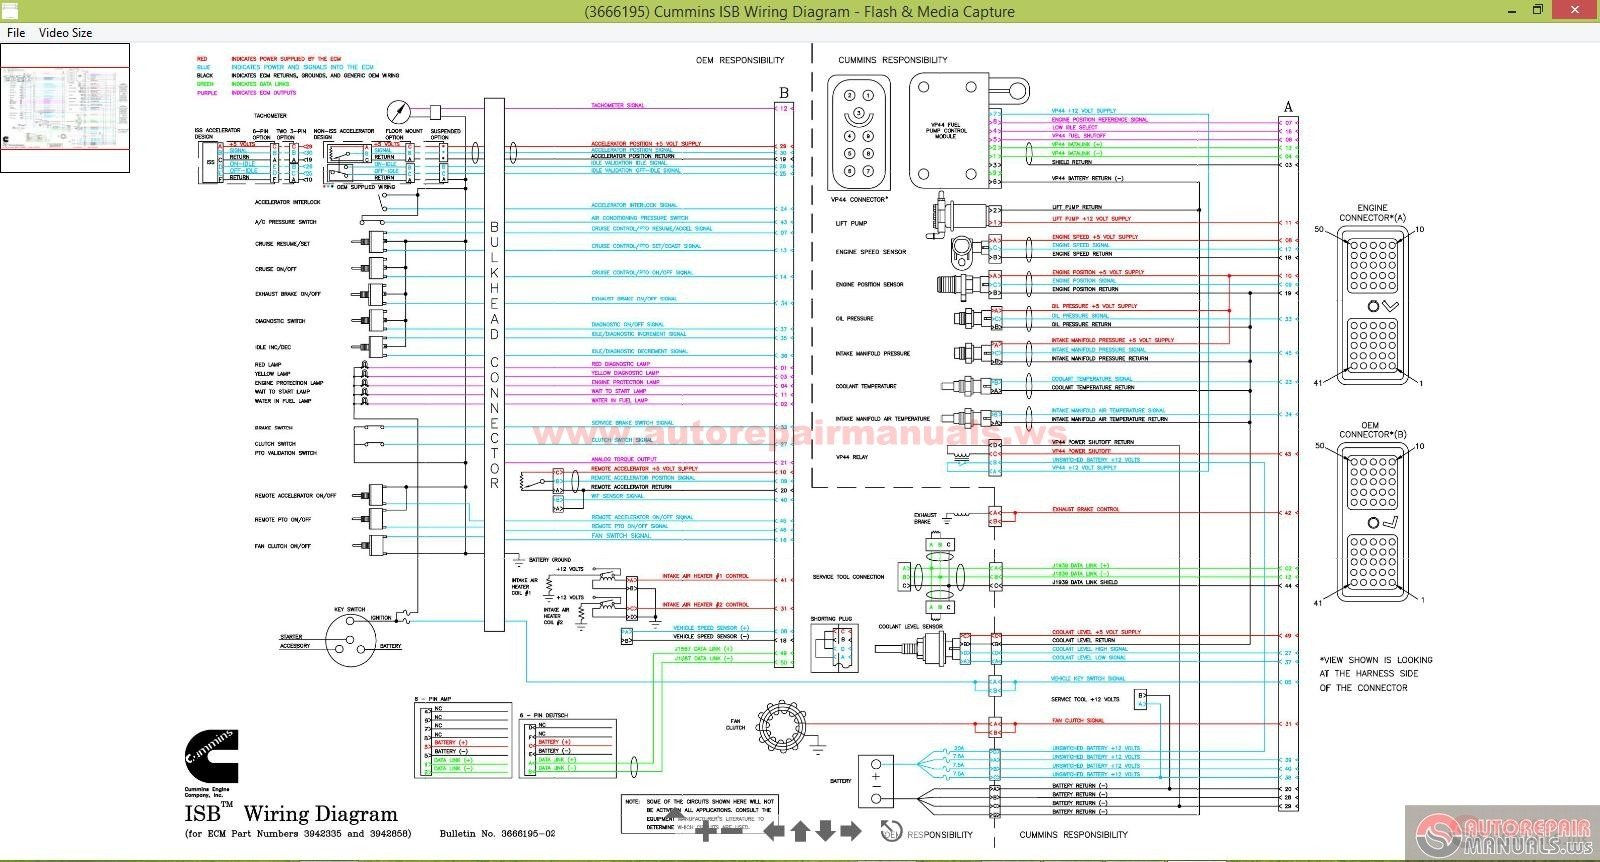 hino alternator wiring diagram with 2001 Hyundai Santa Fe Engine Diagram on Elec likewise Honda Cx500 C Motorcycle 1979 1981 And in addition Volkswagen Diy Tips For Changing Fuses also How To Replace An Alternator furthermore 2009 2010 Toyota Corolla Electrical Wiring Diagrams.